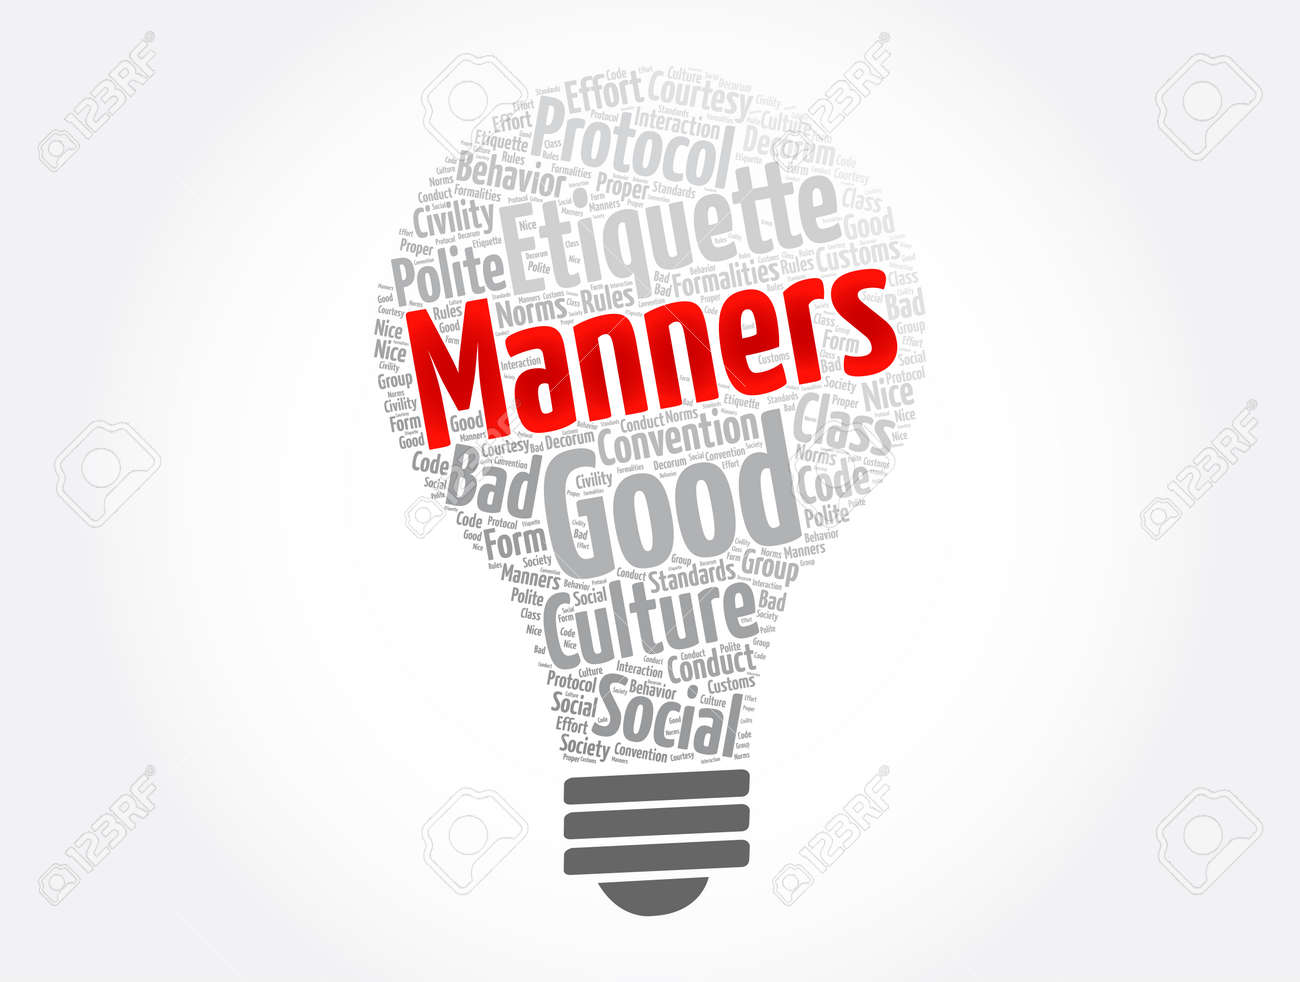 Manners word cloud collage, concept background - 166573599